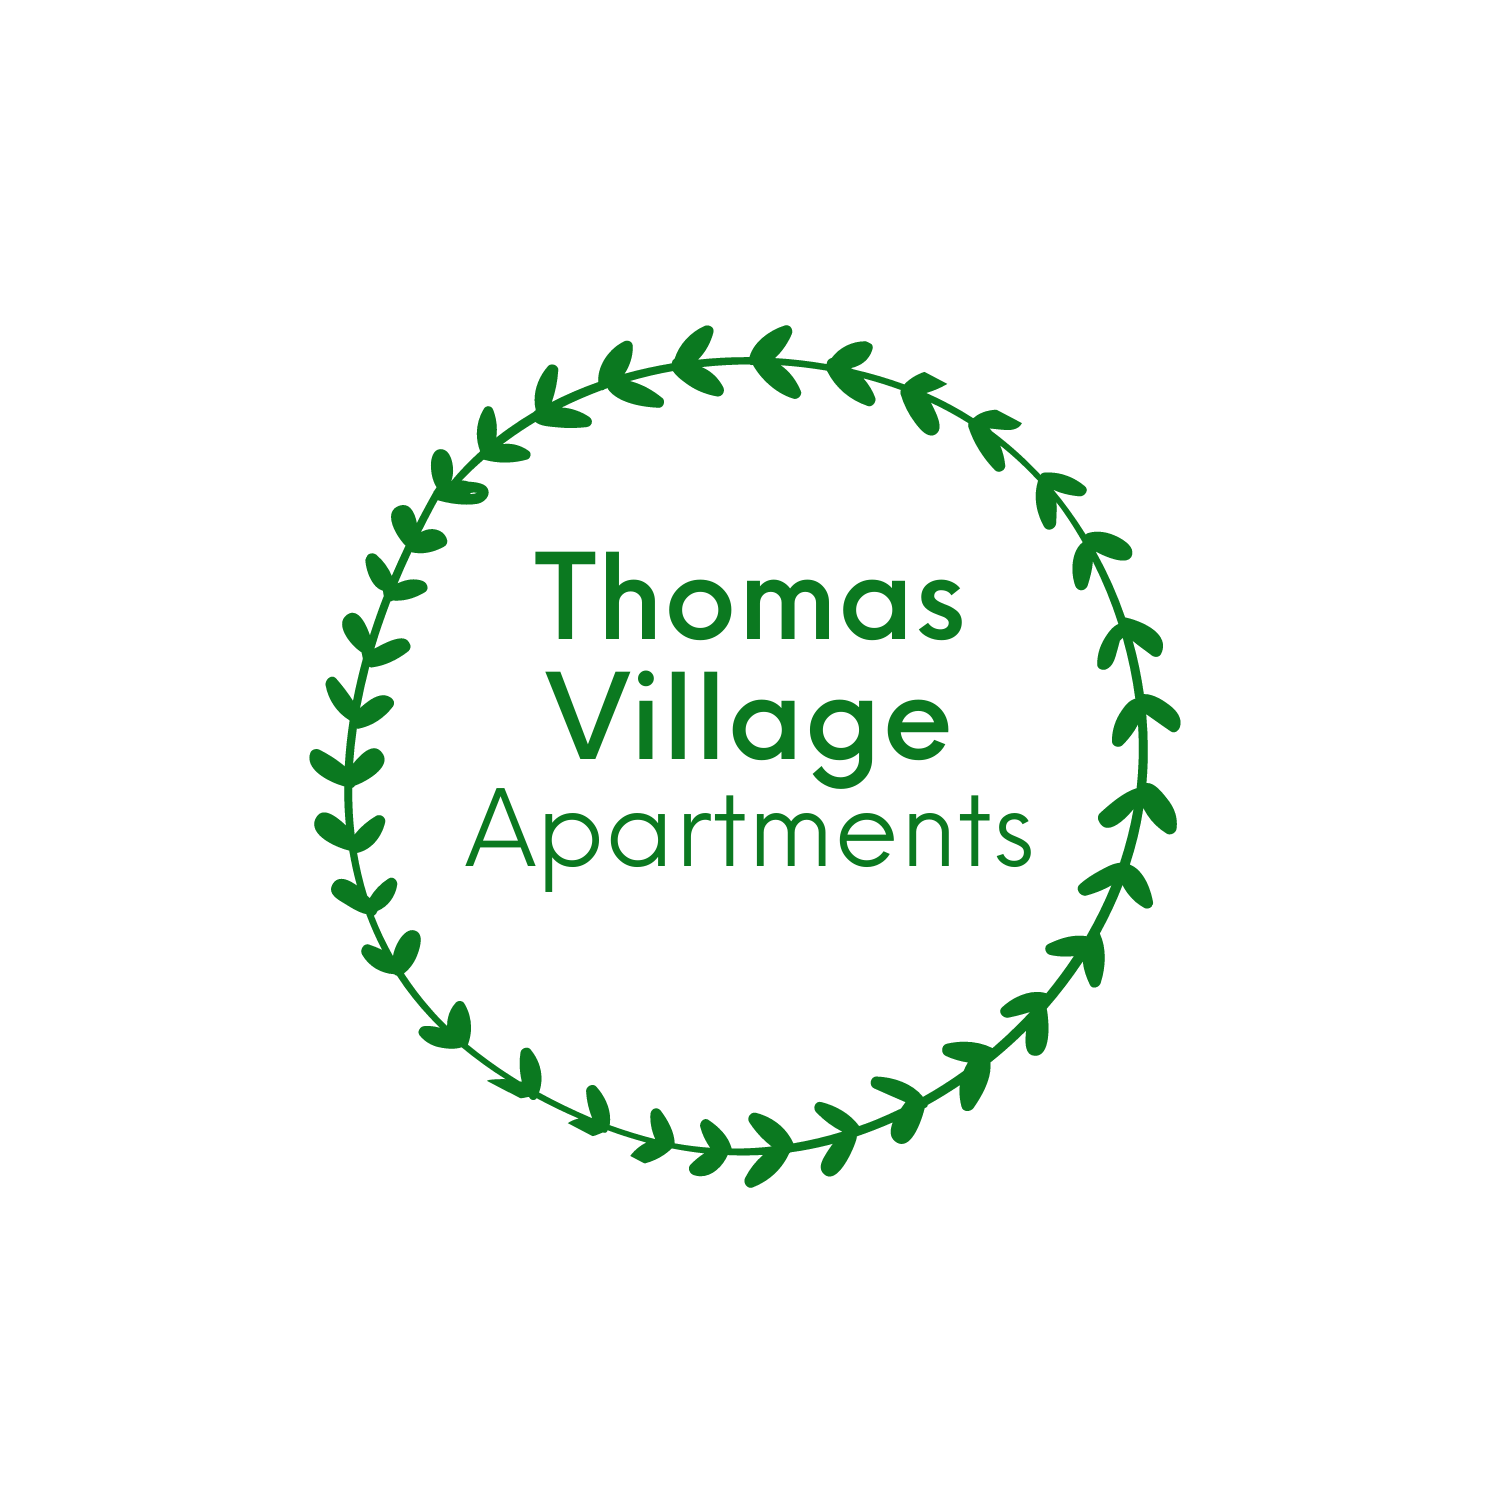 ThomasVillage